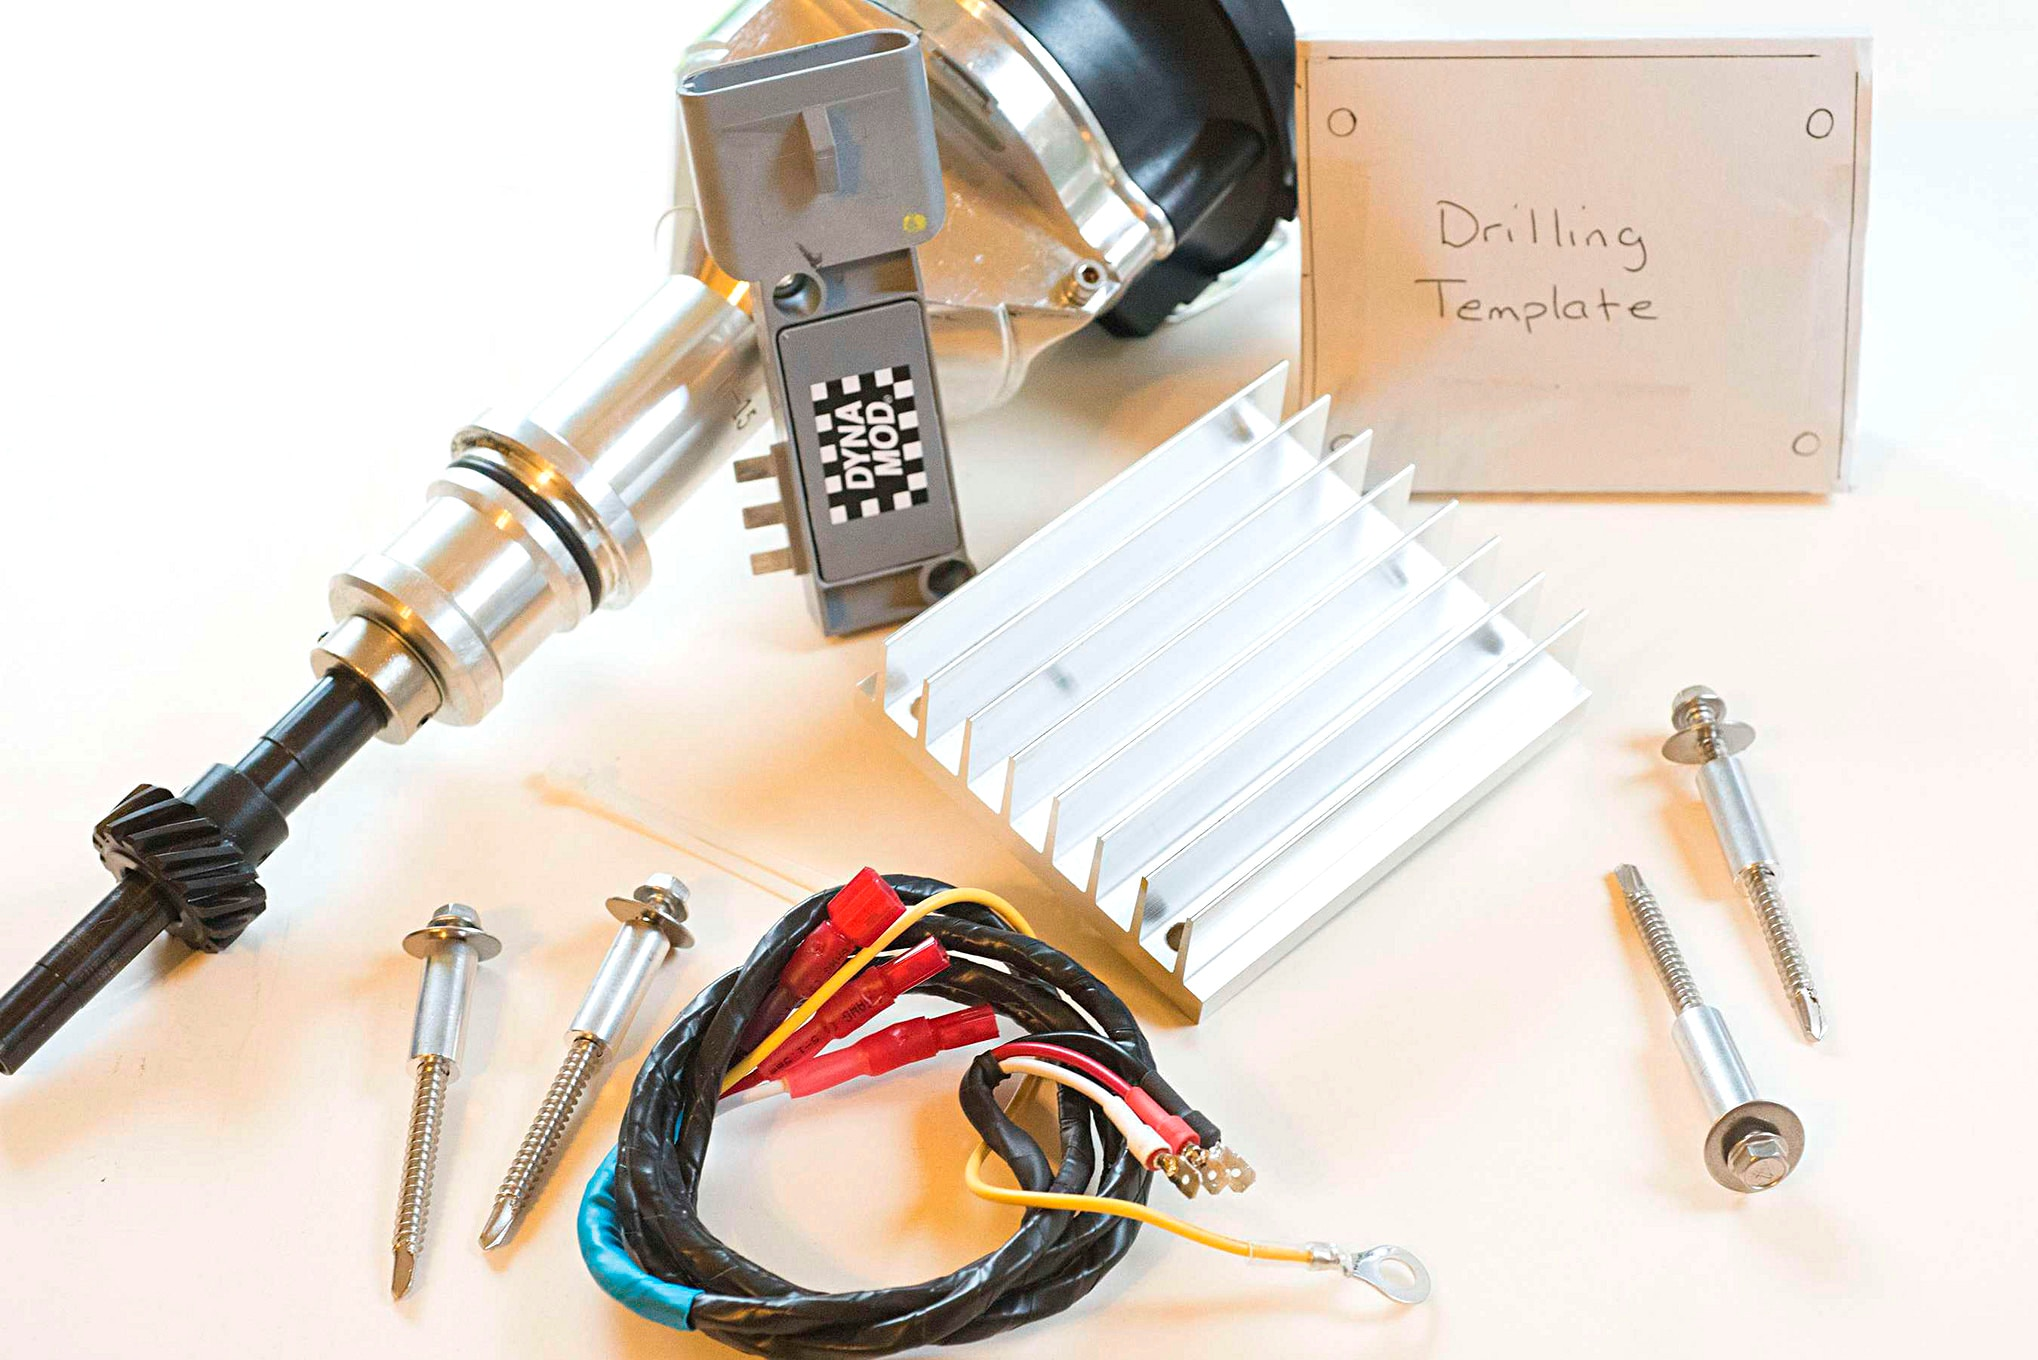 medium resolution of mccully racing motor s tfi relocation kit comes with a 3 foot shielded wiring harness heat sink